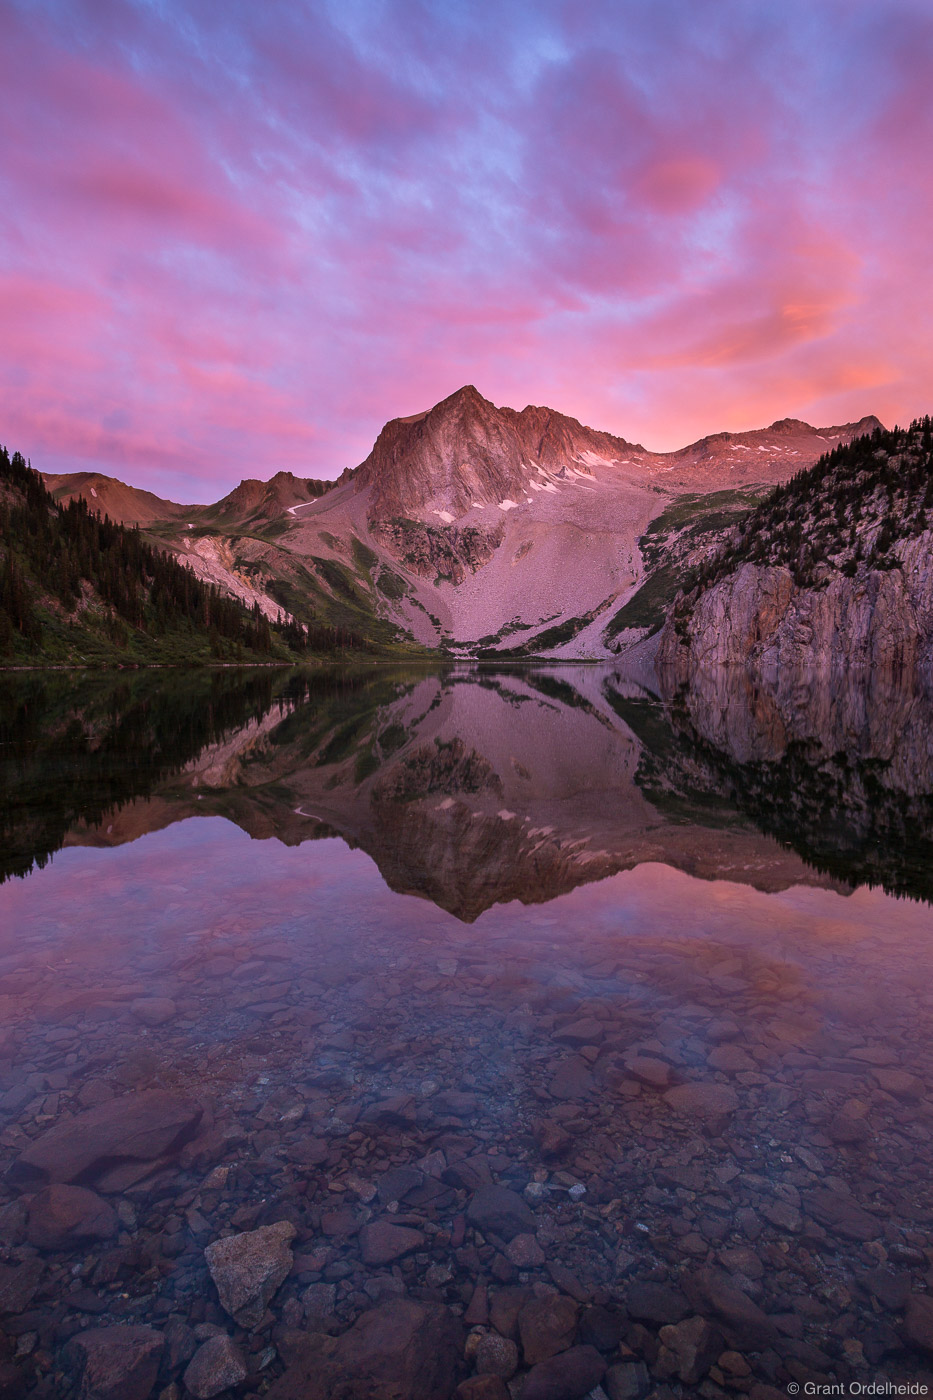 snowmass, lake, maroon bells, wilderness, aspen, colorado, reflected, sunrise, photo